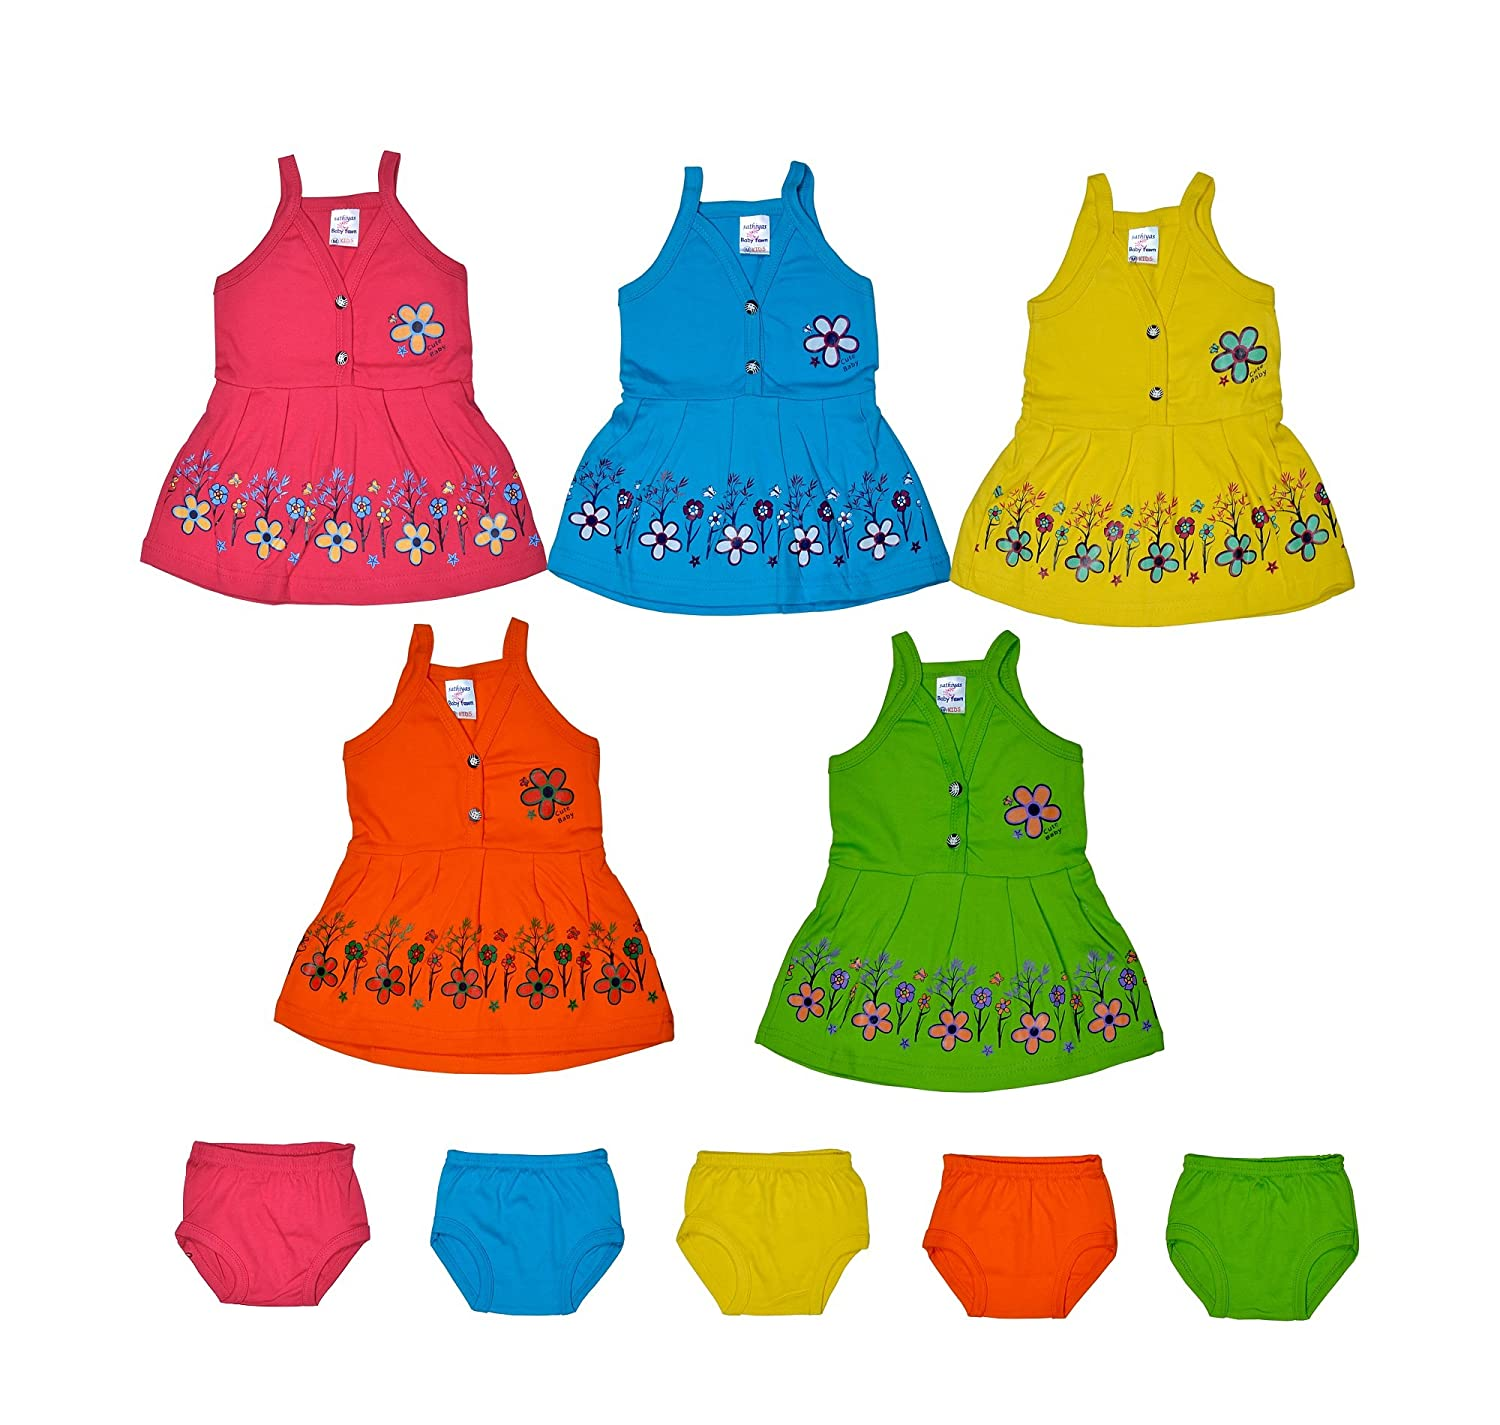 a36d20dd9 Baby Girl s Clothes  Buy Newborn Baby Girl s Clothes Online at Low ...